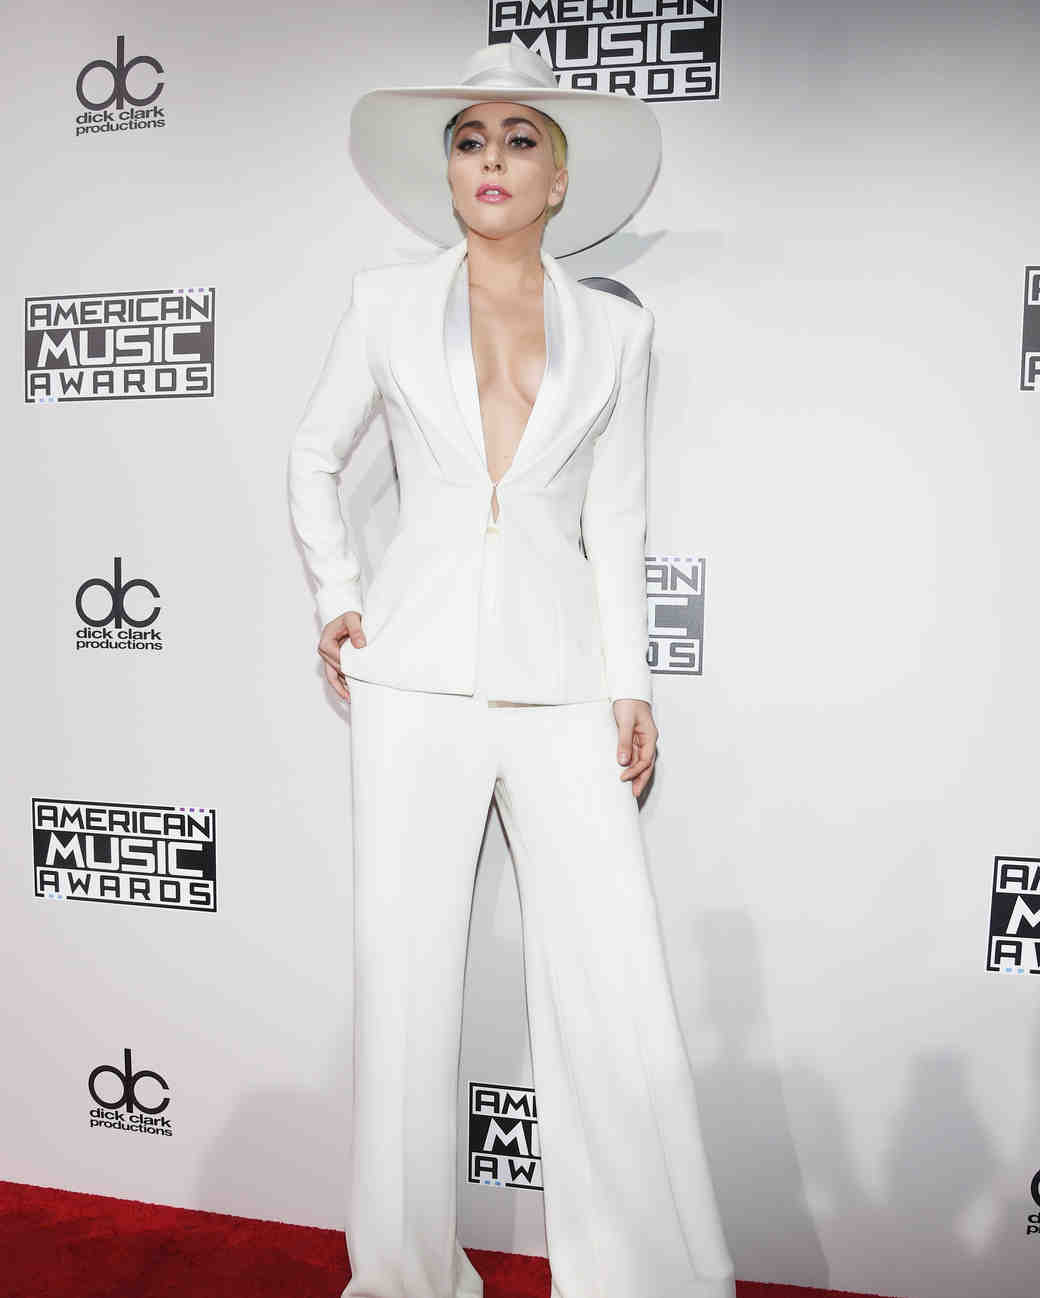 Lady Gaga wearing a white suit on the 2016 AMA red carpet